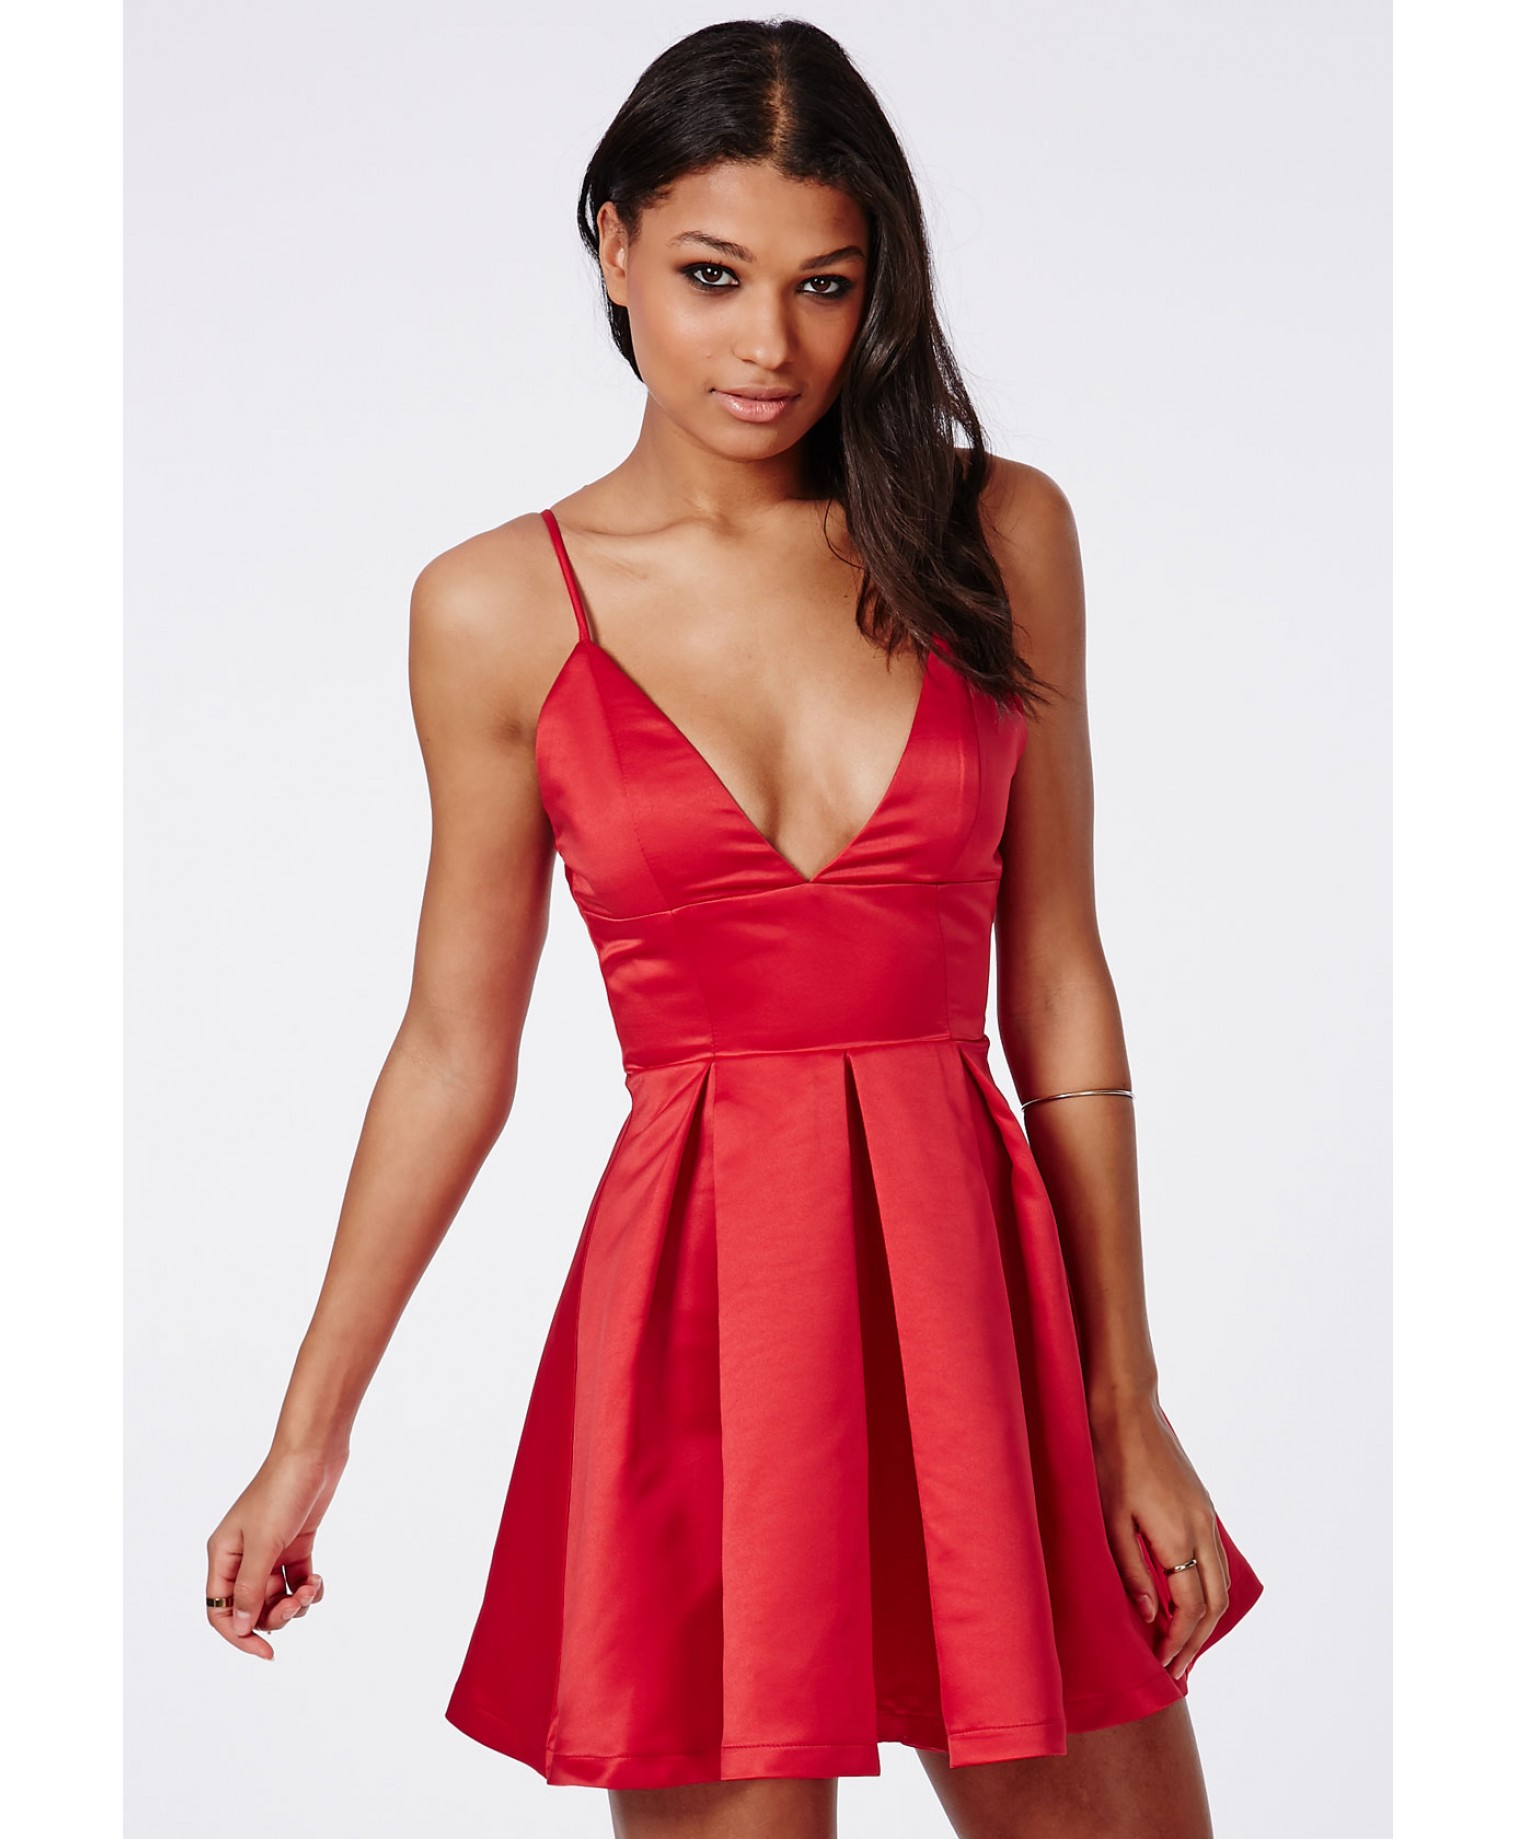 Red Prom Dresses And Burgundy Red Party Dresses. Find your perfect red party dress or red prom gown in this alluring selection of dresses. In this selection of red formal gowns and burgundy red dresses, you will find a sophisticated evening gown or red semi-formal party dress to .